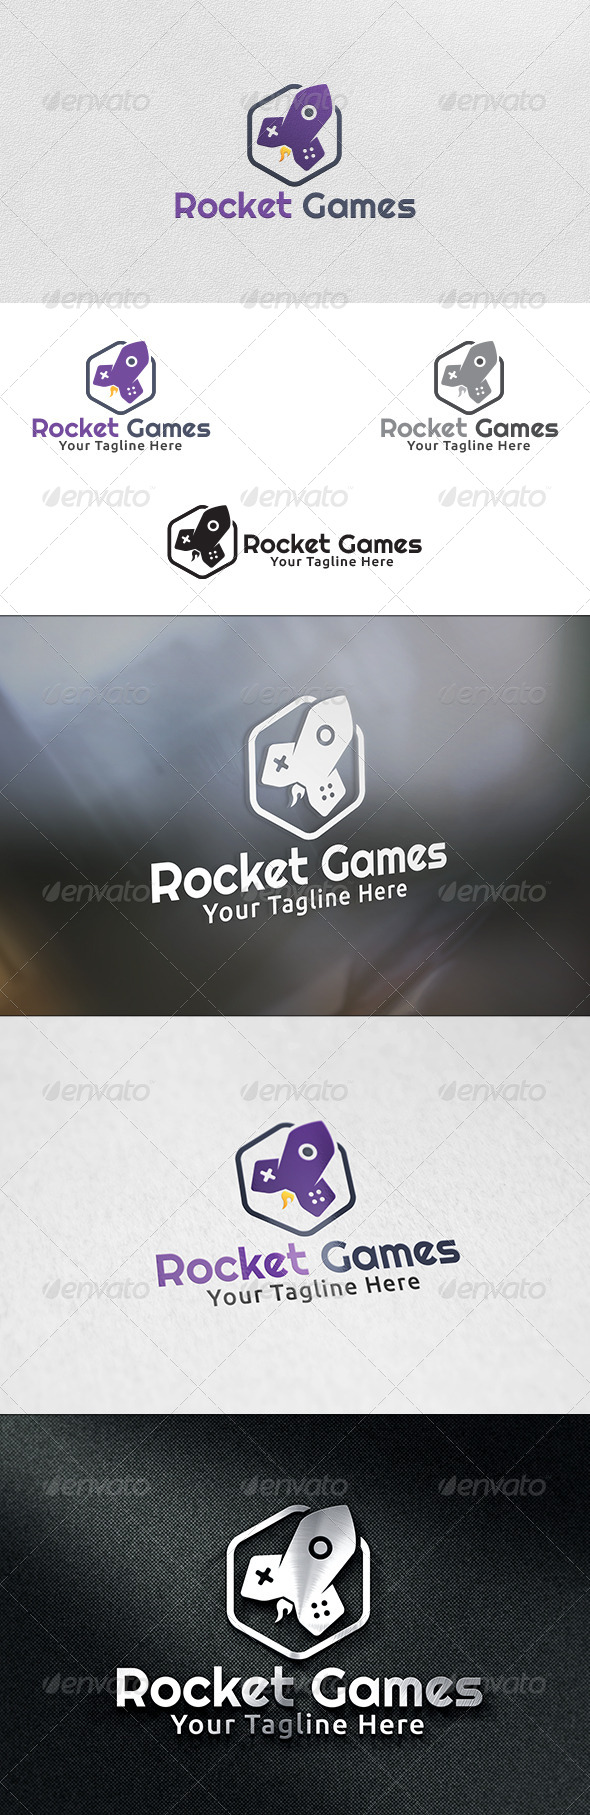 GraphicRiver Rocket Games Logo Template 6030702